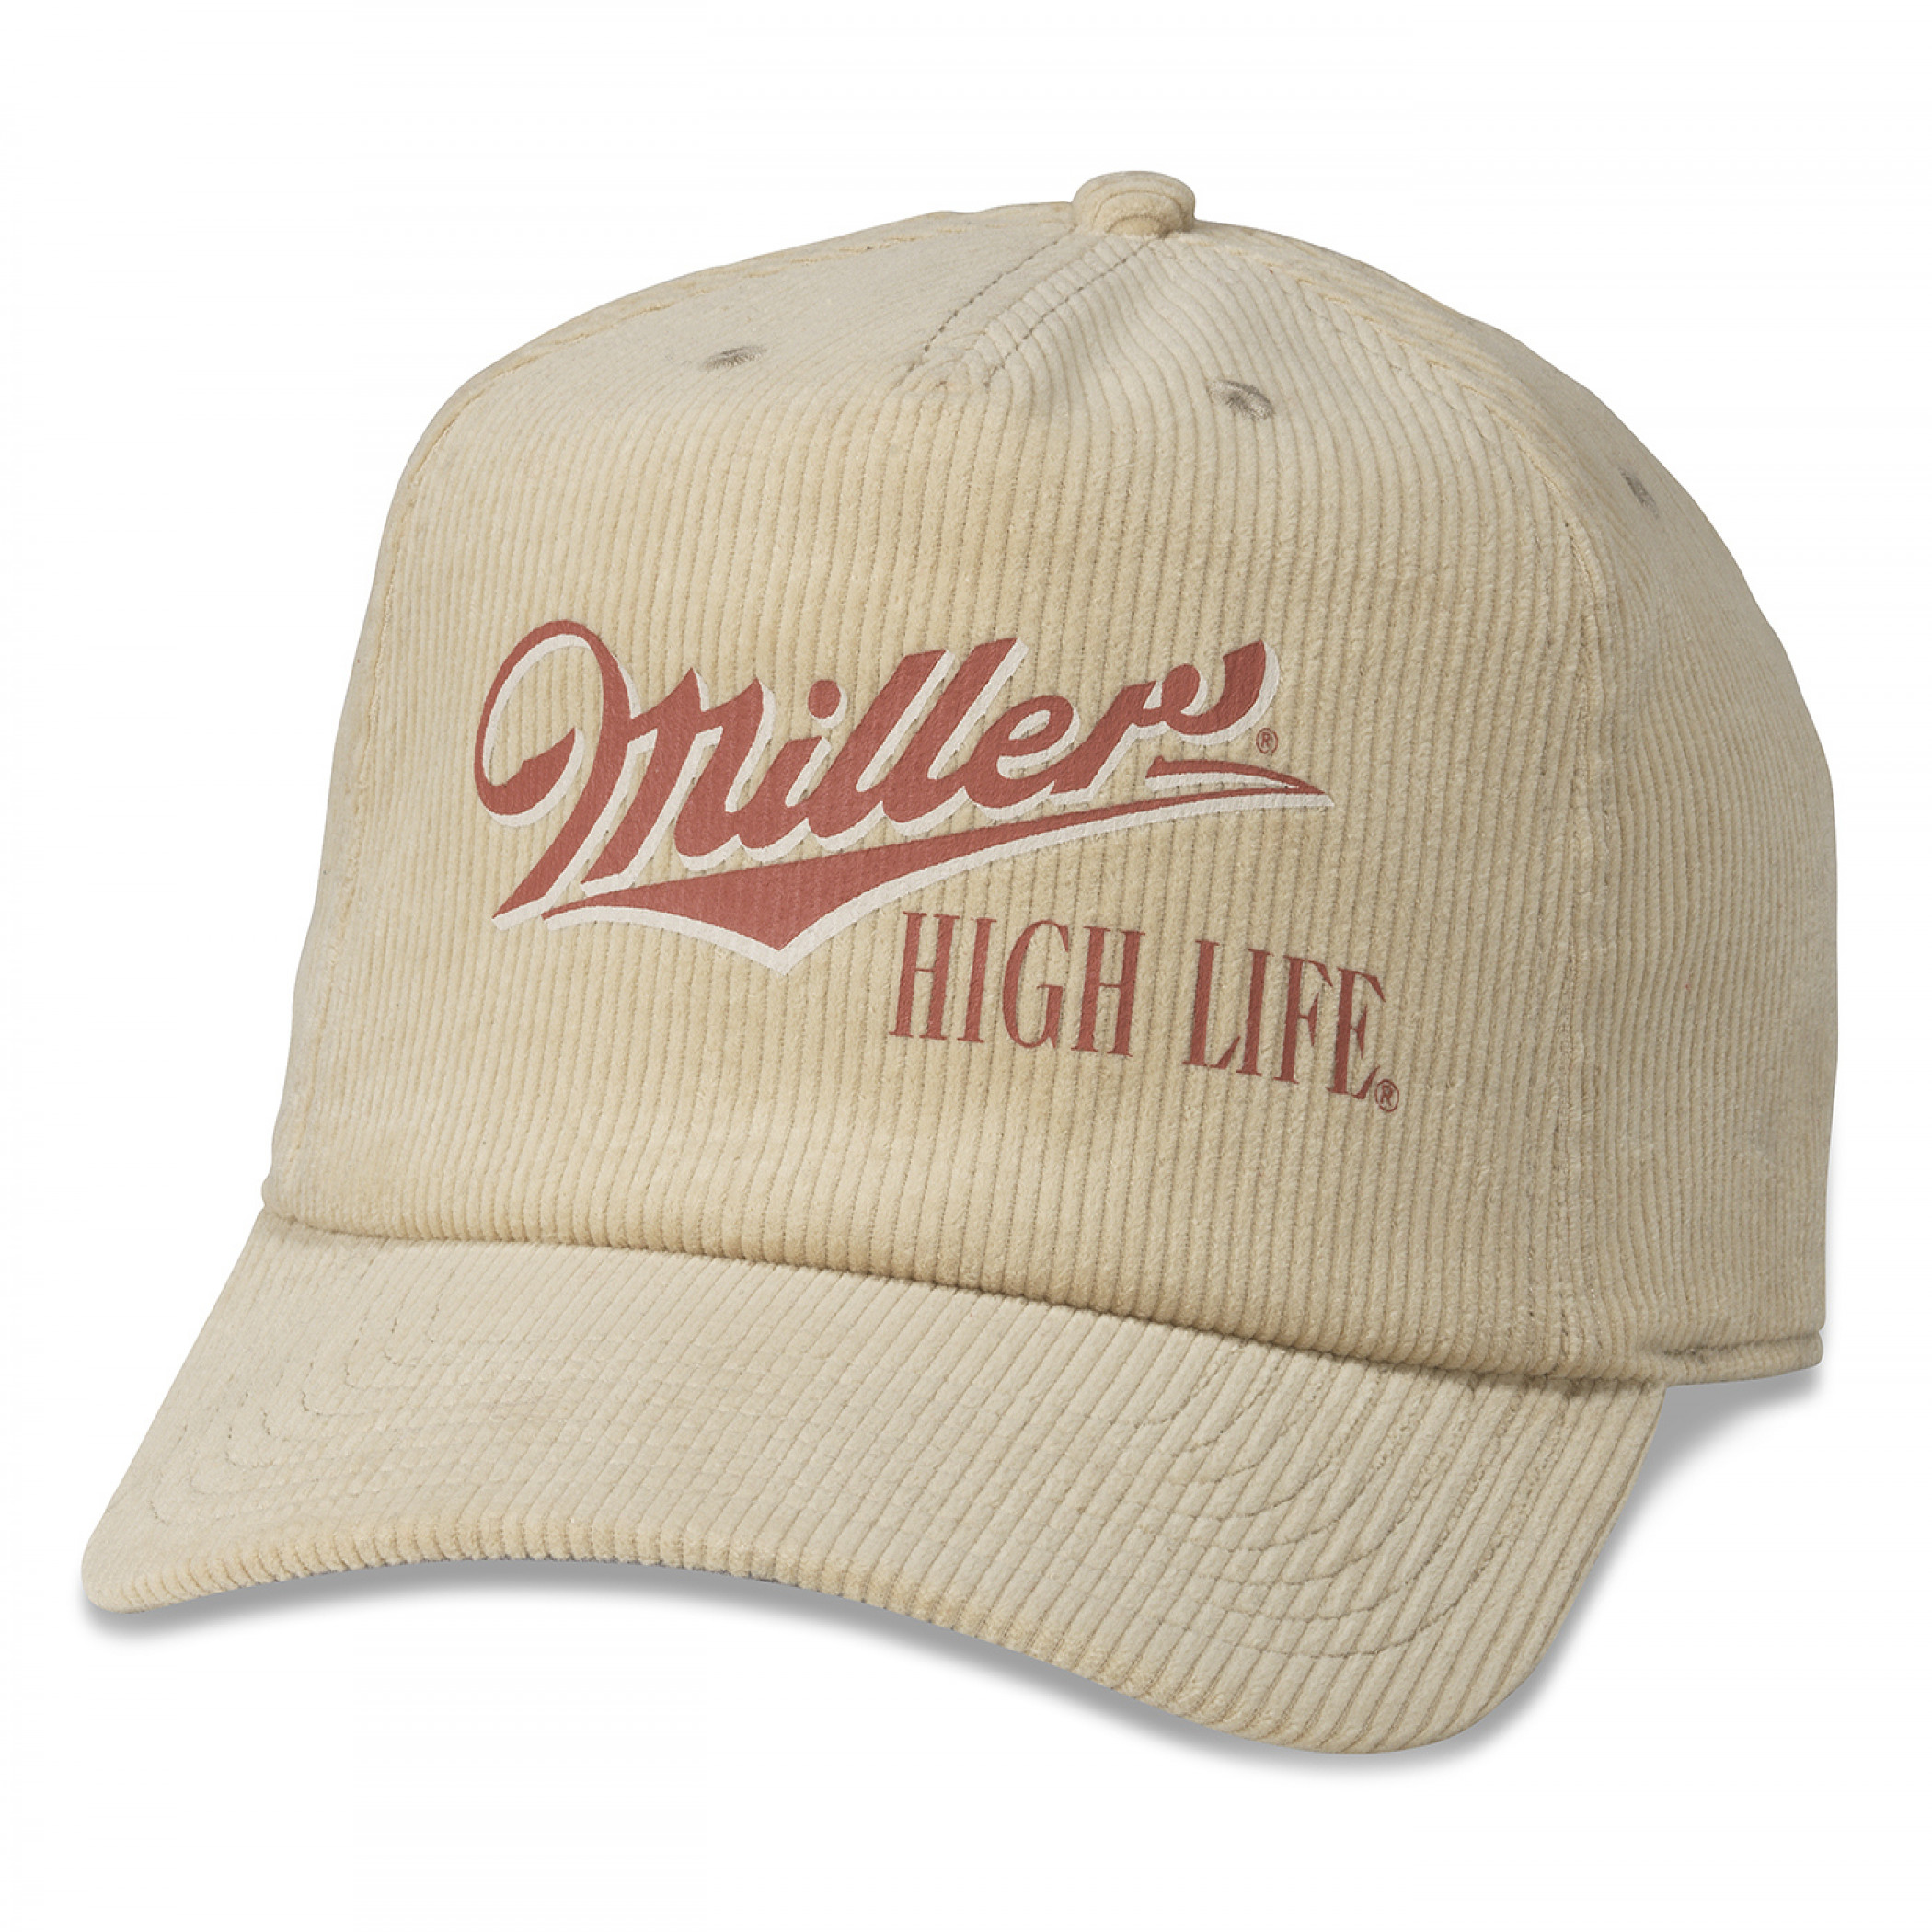 Miller High Life Beer Printed Corduroy Hat